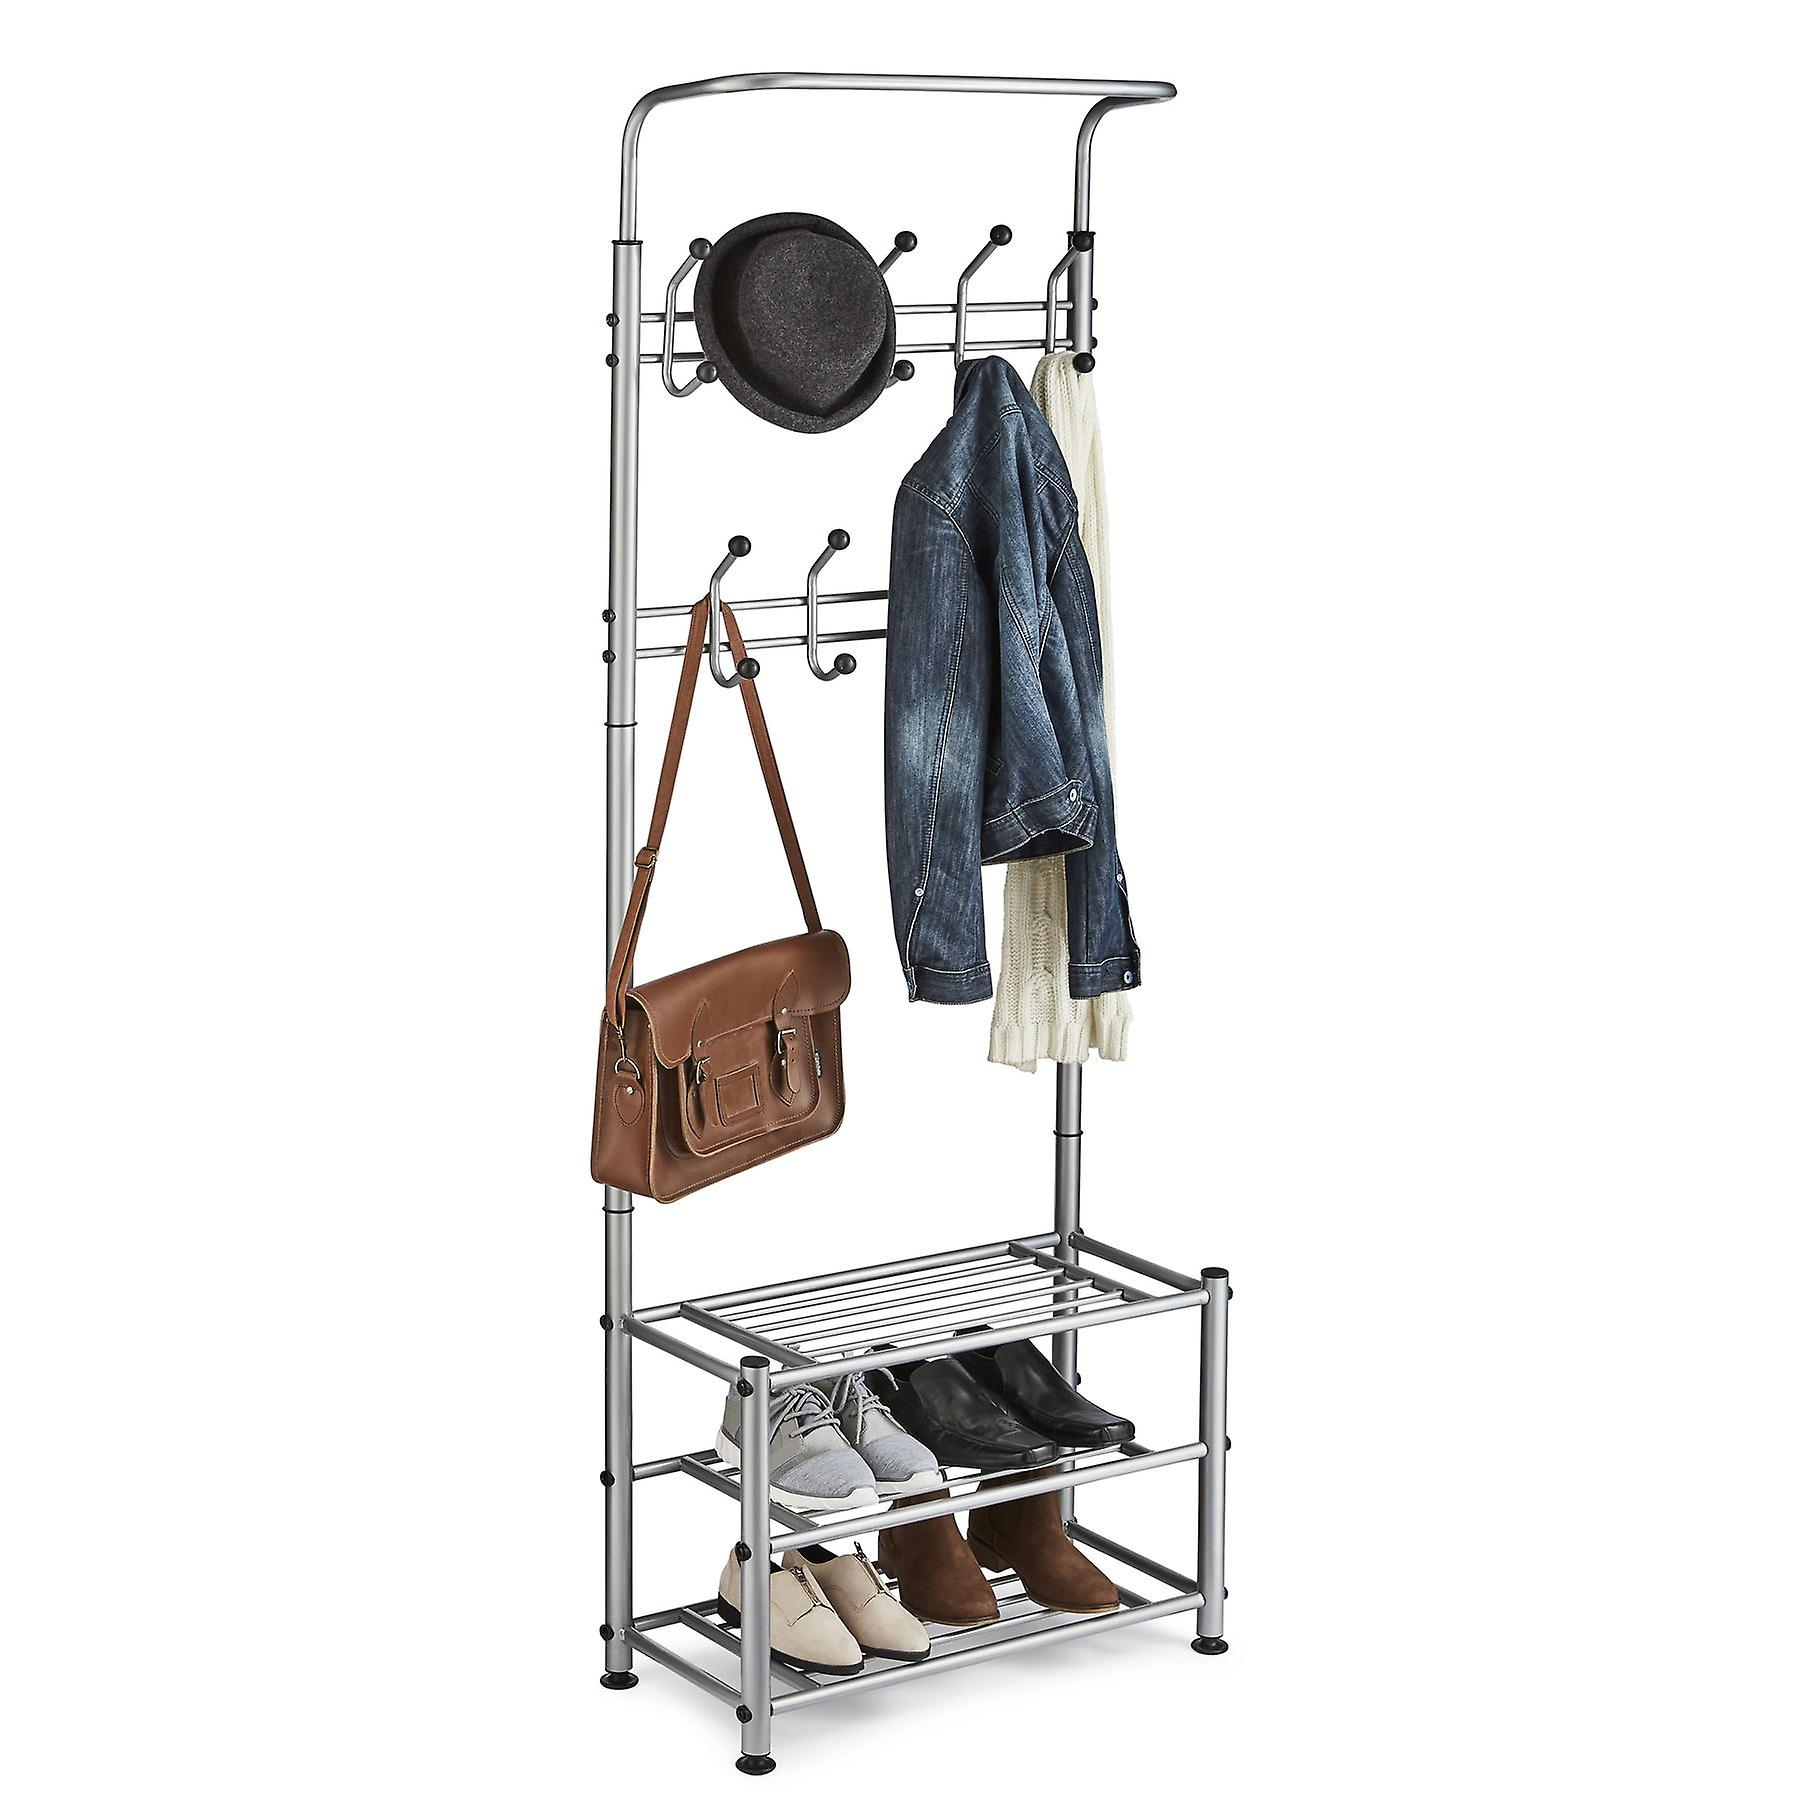 Multi Purpose Stand 18 Hooks For Clothes Shoes Hats Bags - Grey